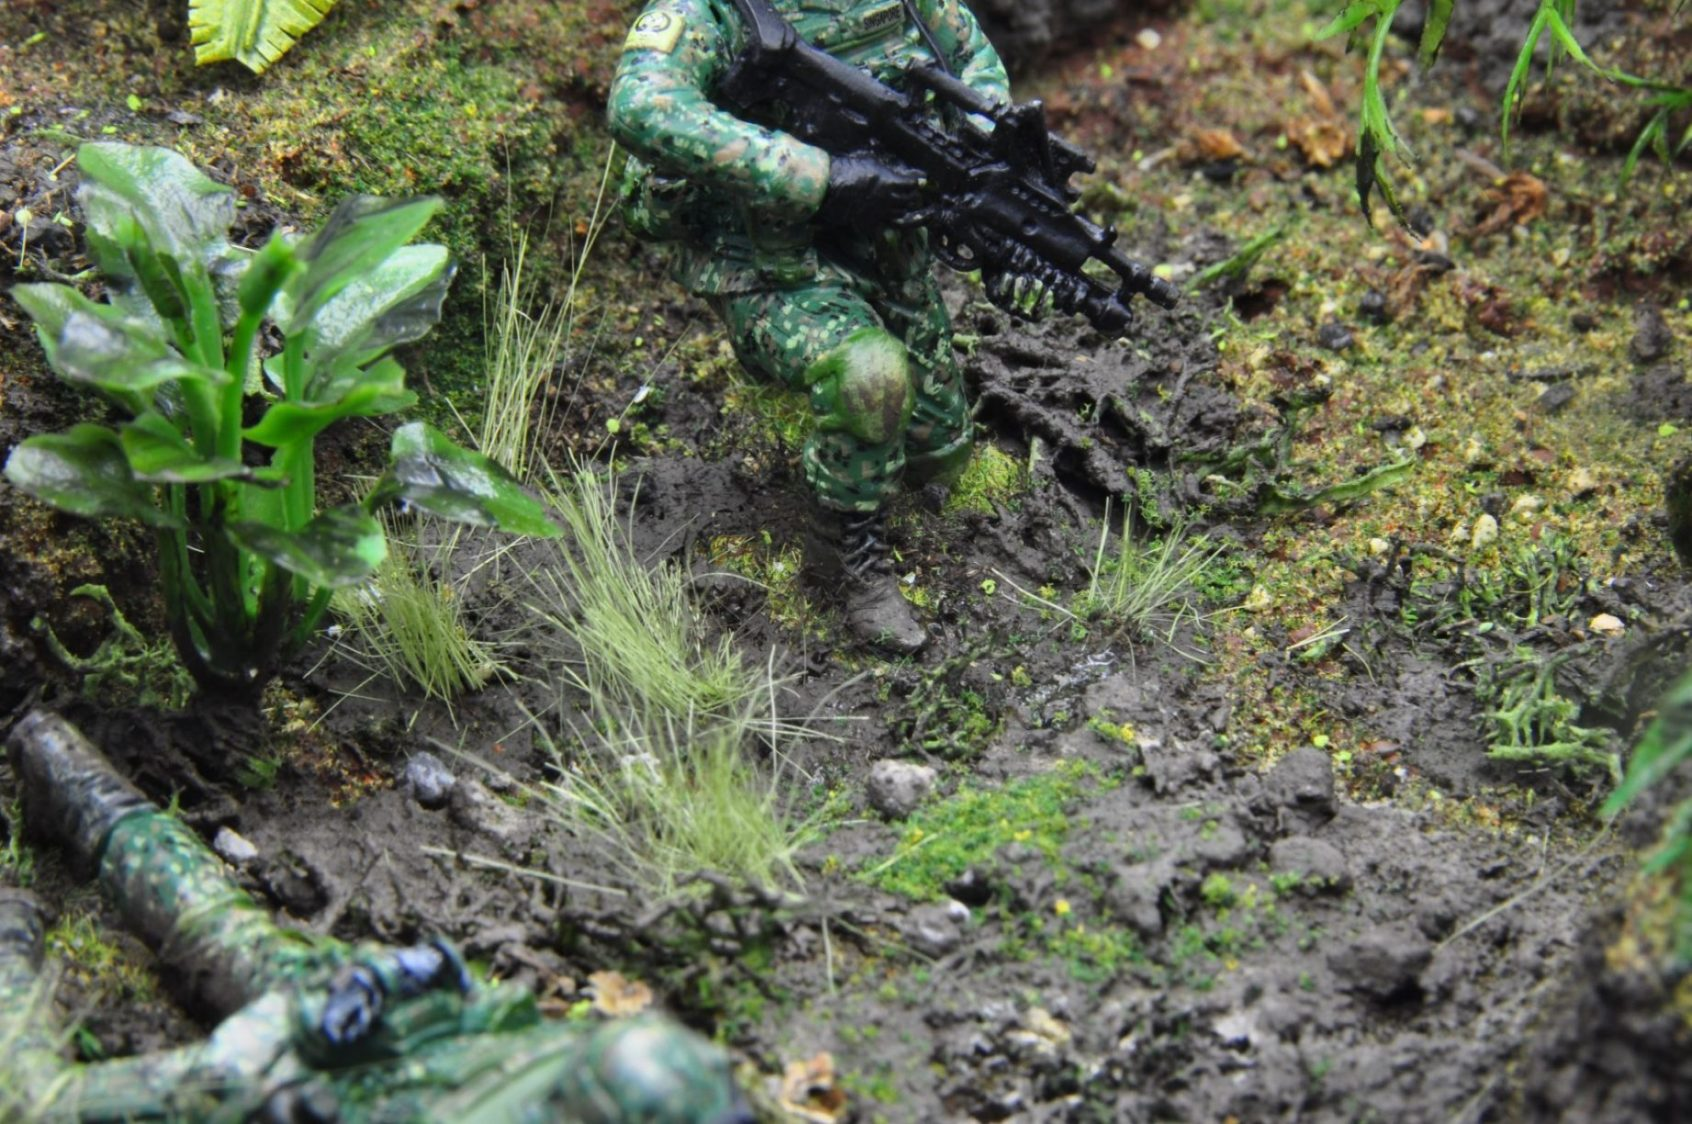 Miniature Stories Singapore Soldier & Jungle Diorama